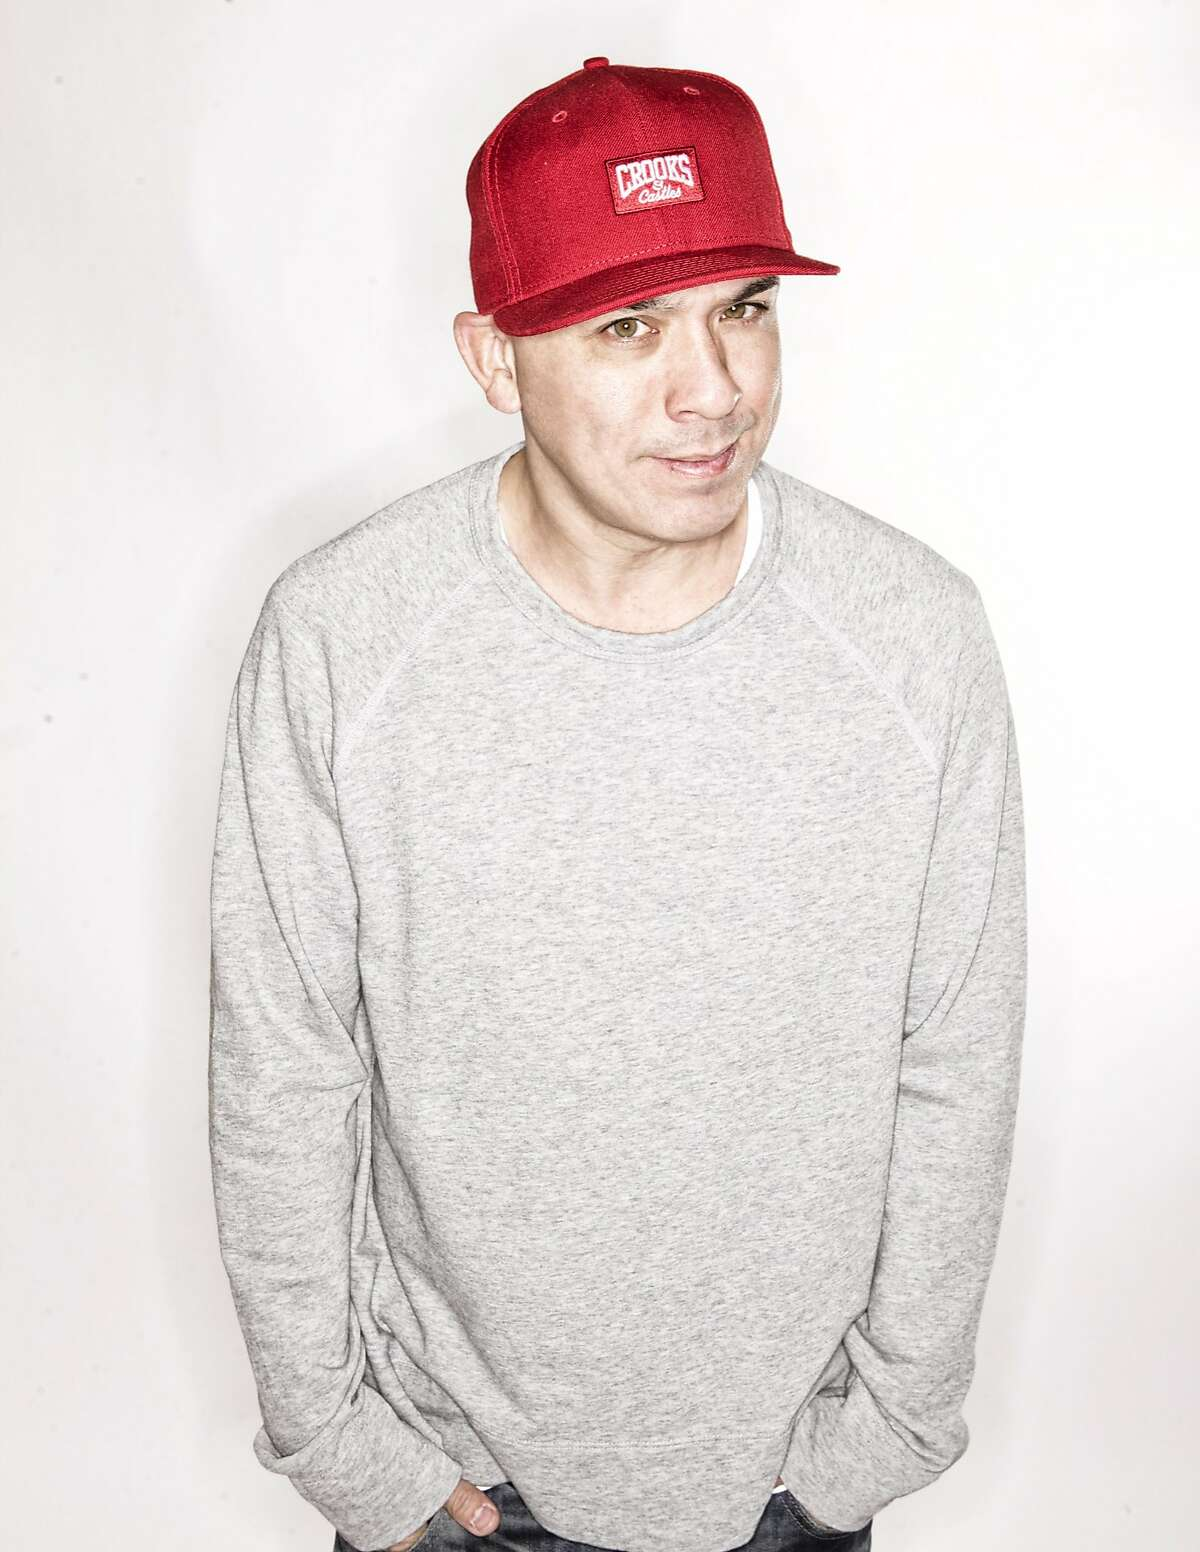 Comedian Jo Koy performs multiple dates at the San Jose Improv.